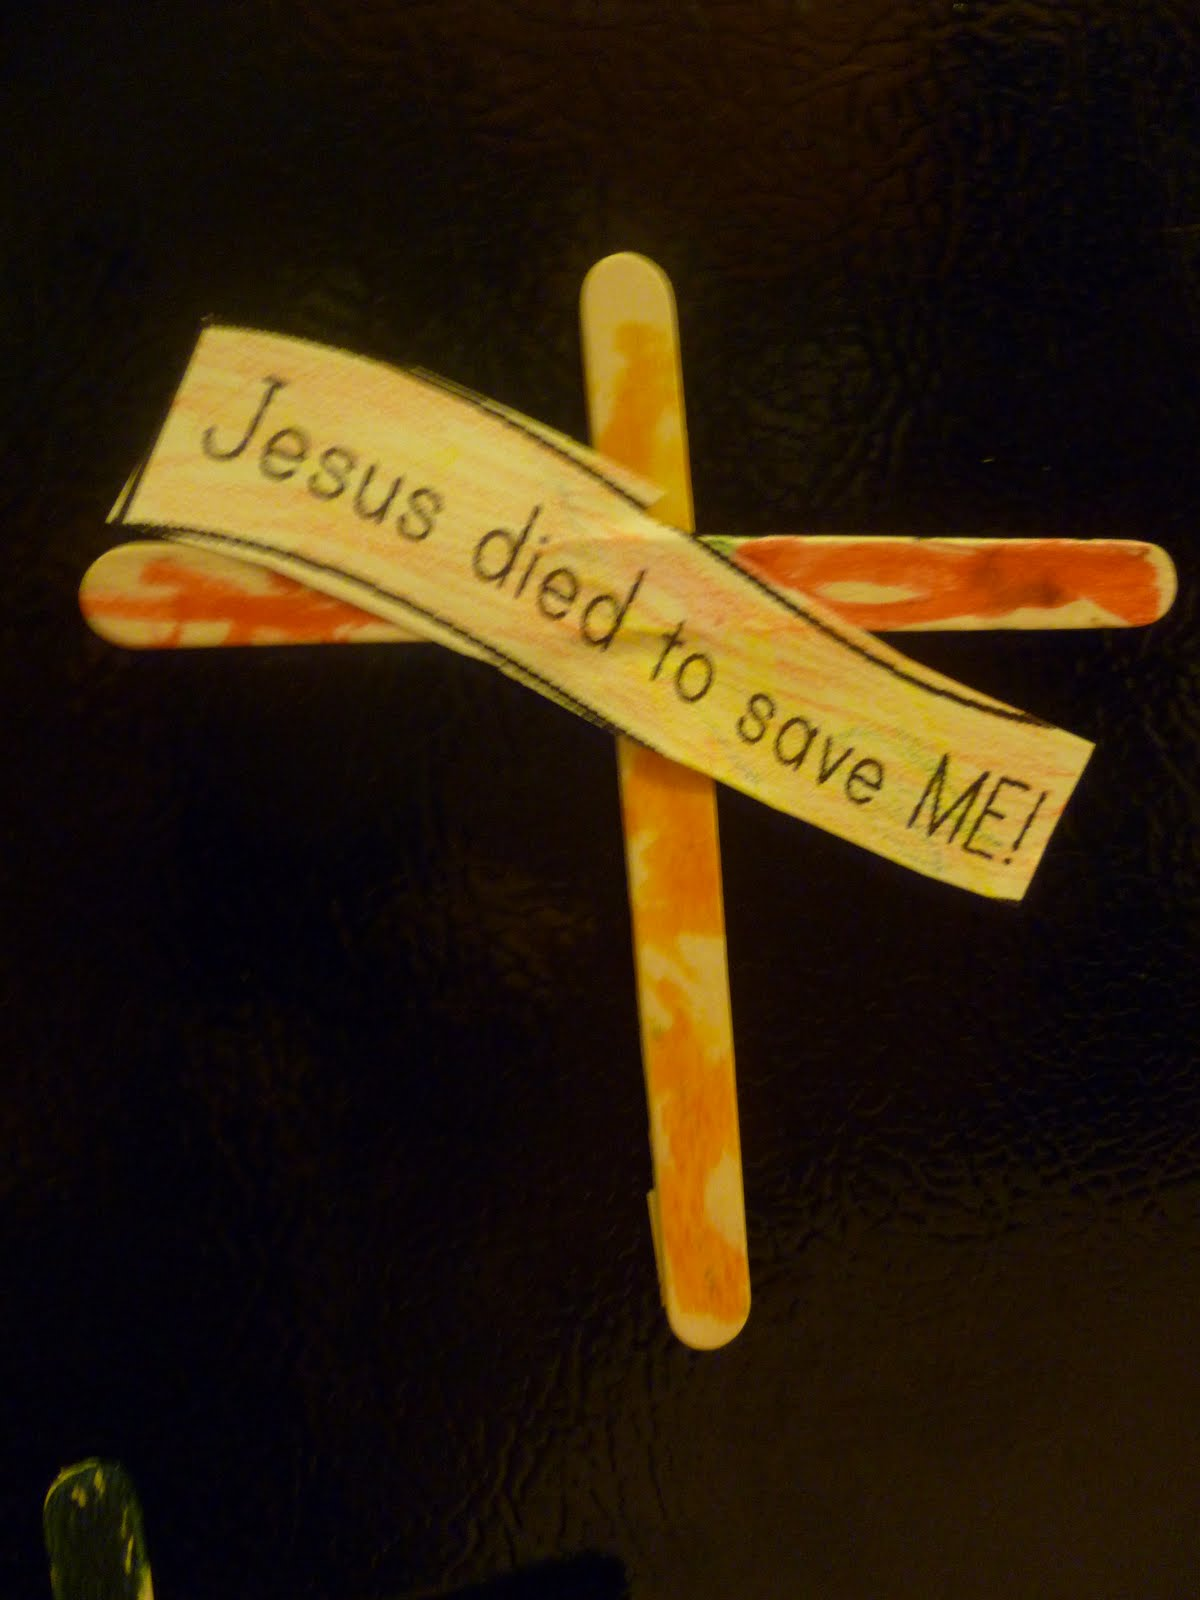 LAST MINUTE EASTER GIFT KIDS CAN MAKE JESUS DIED TO SAVE